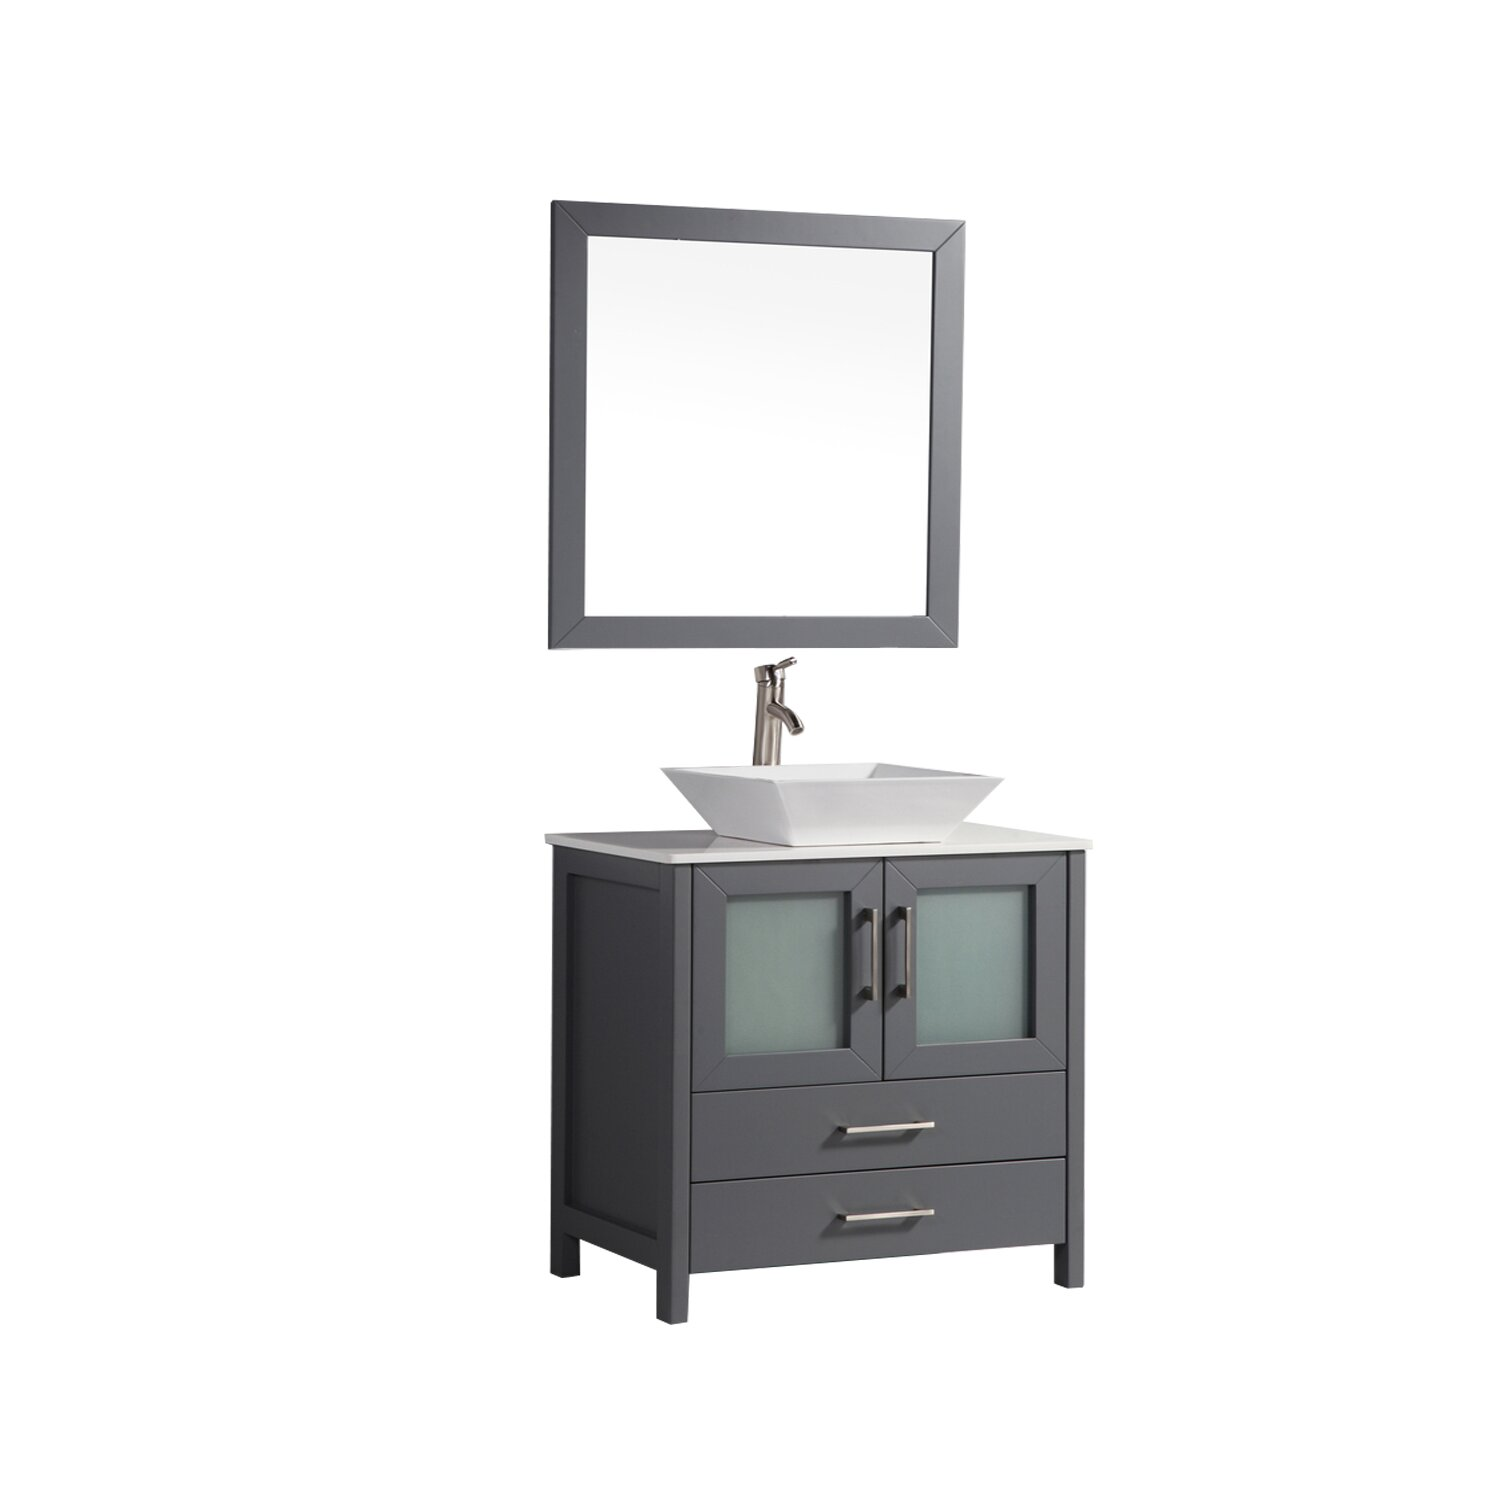 Mtdvanities Tahiti 36 Single Modern Bathroom Vanity Set With Mirror Wayfair